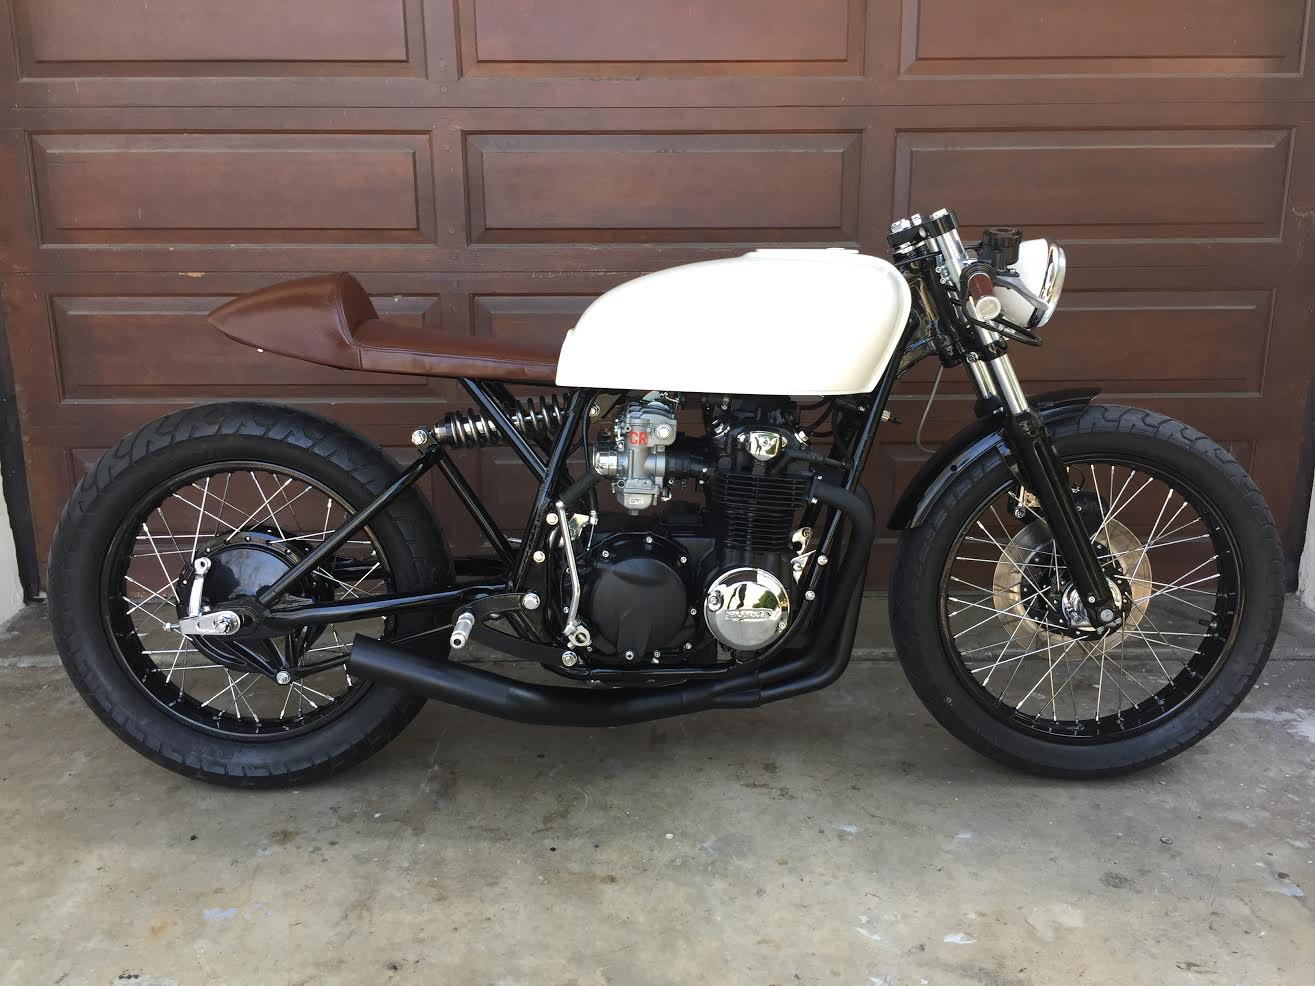 Mono Shock Cb550 Cafe Racer By Alchemy Motorcycles on honda cb550 battery